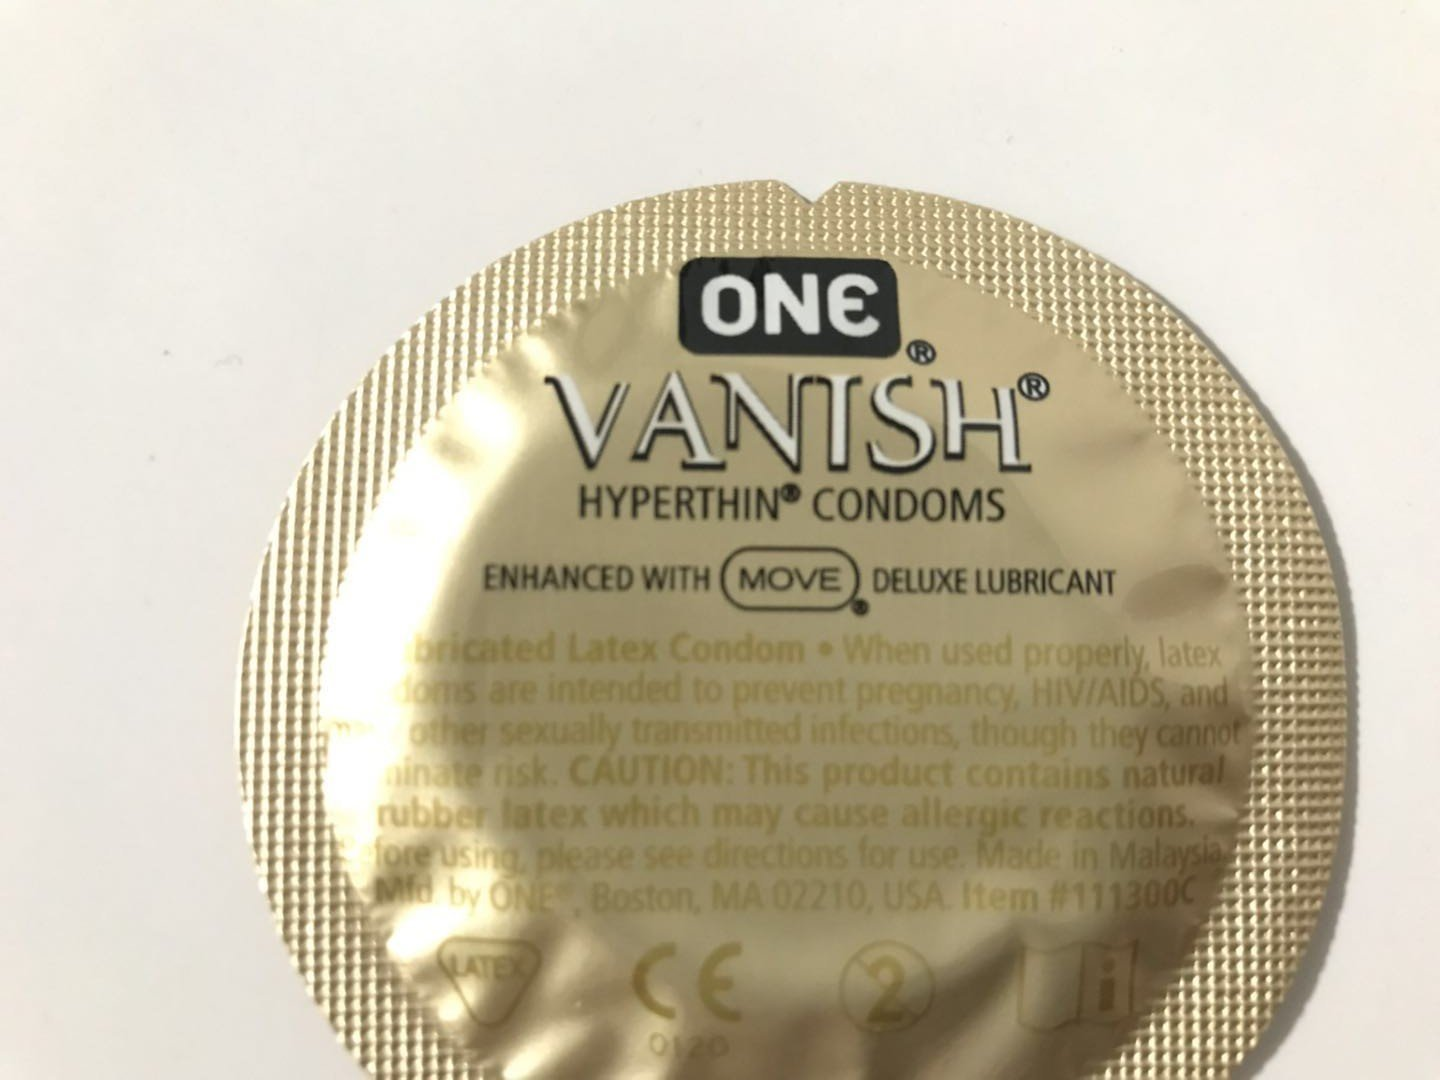 ONE Vanish Hyperthin Condoms Bulk (100) by Vanish